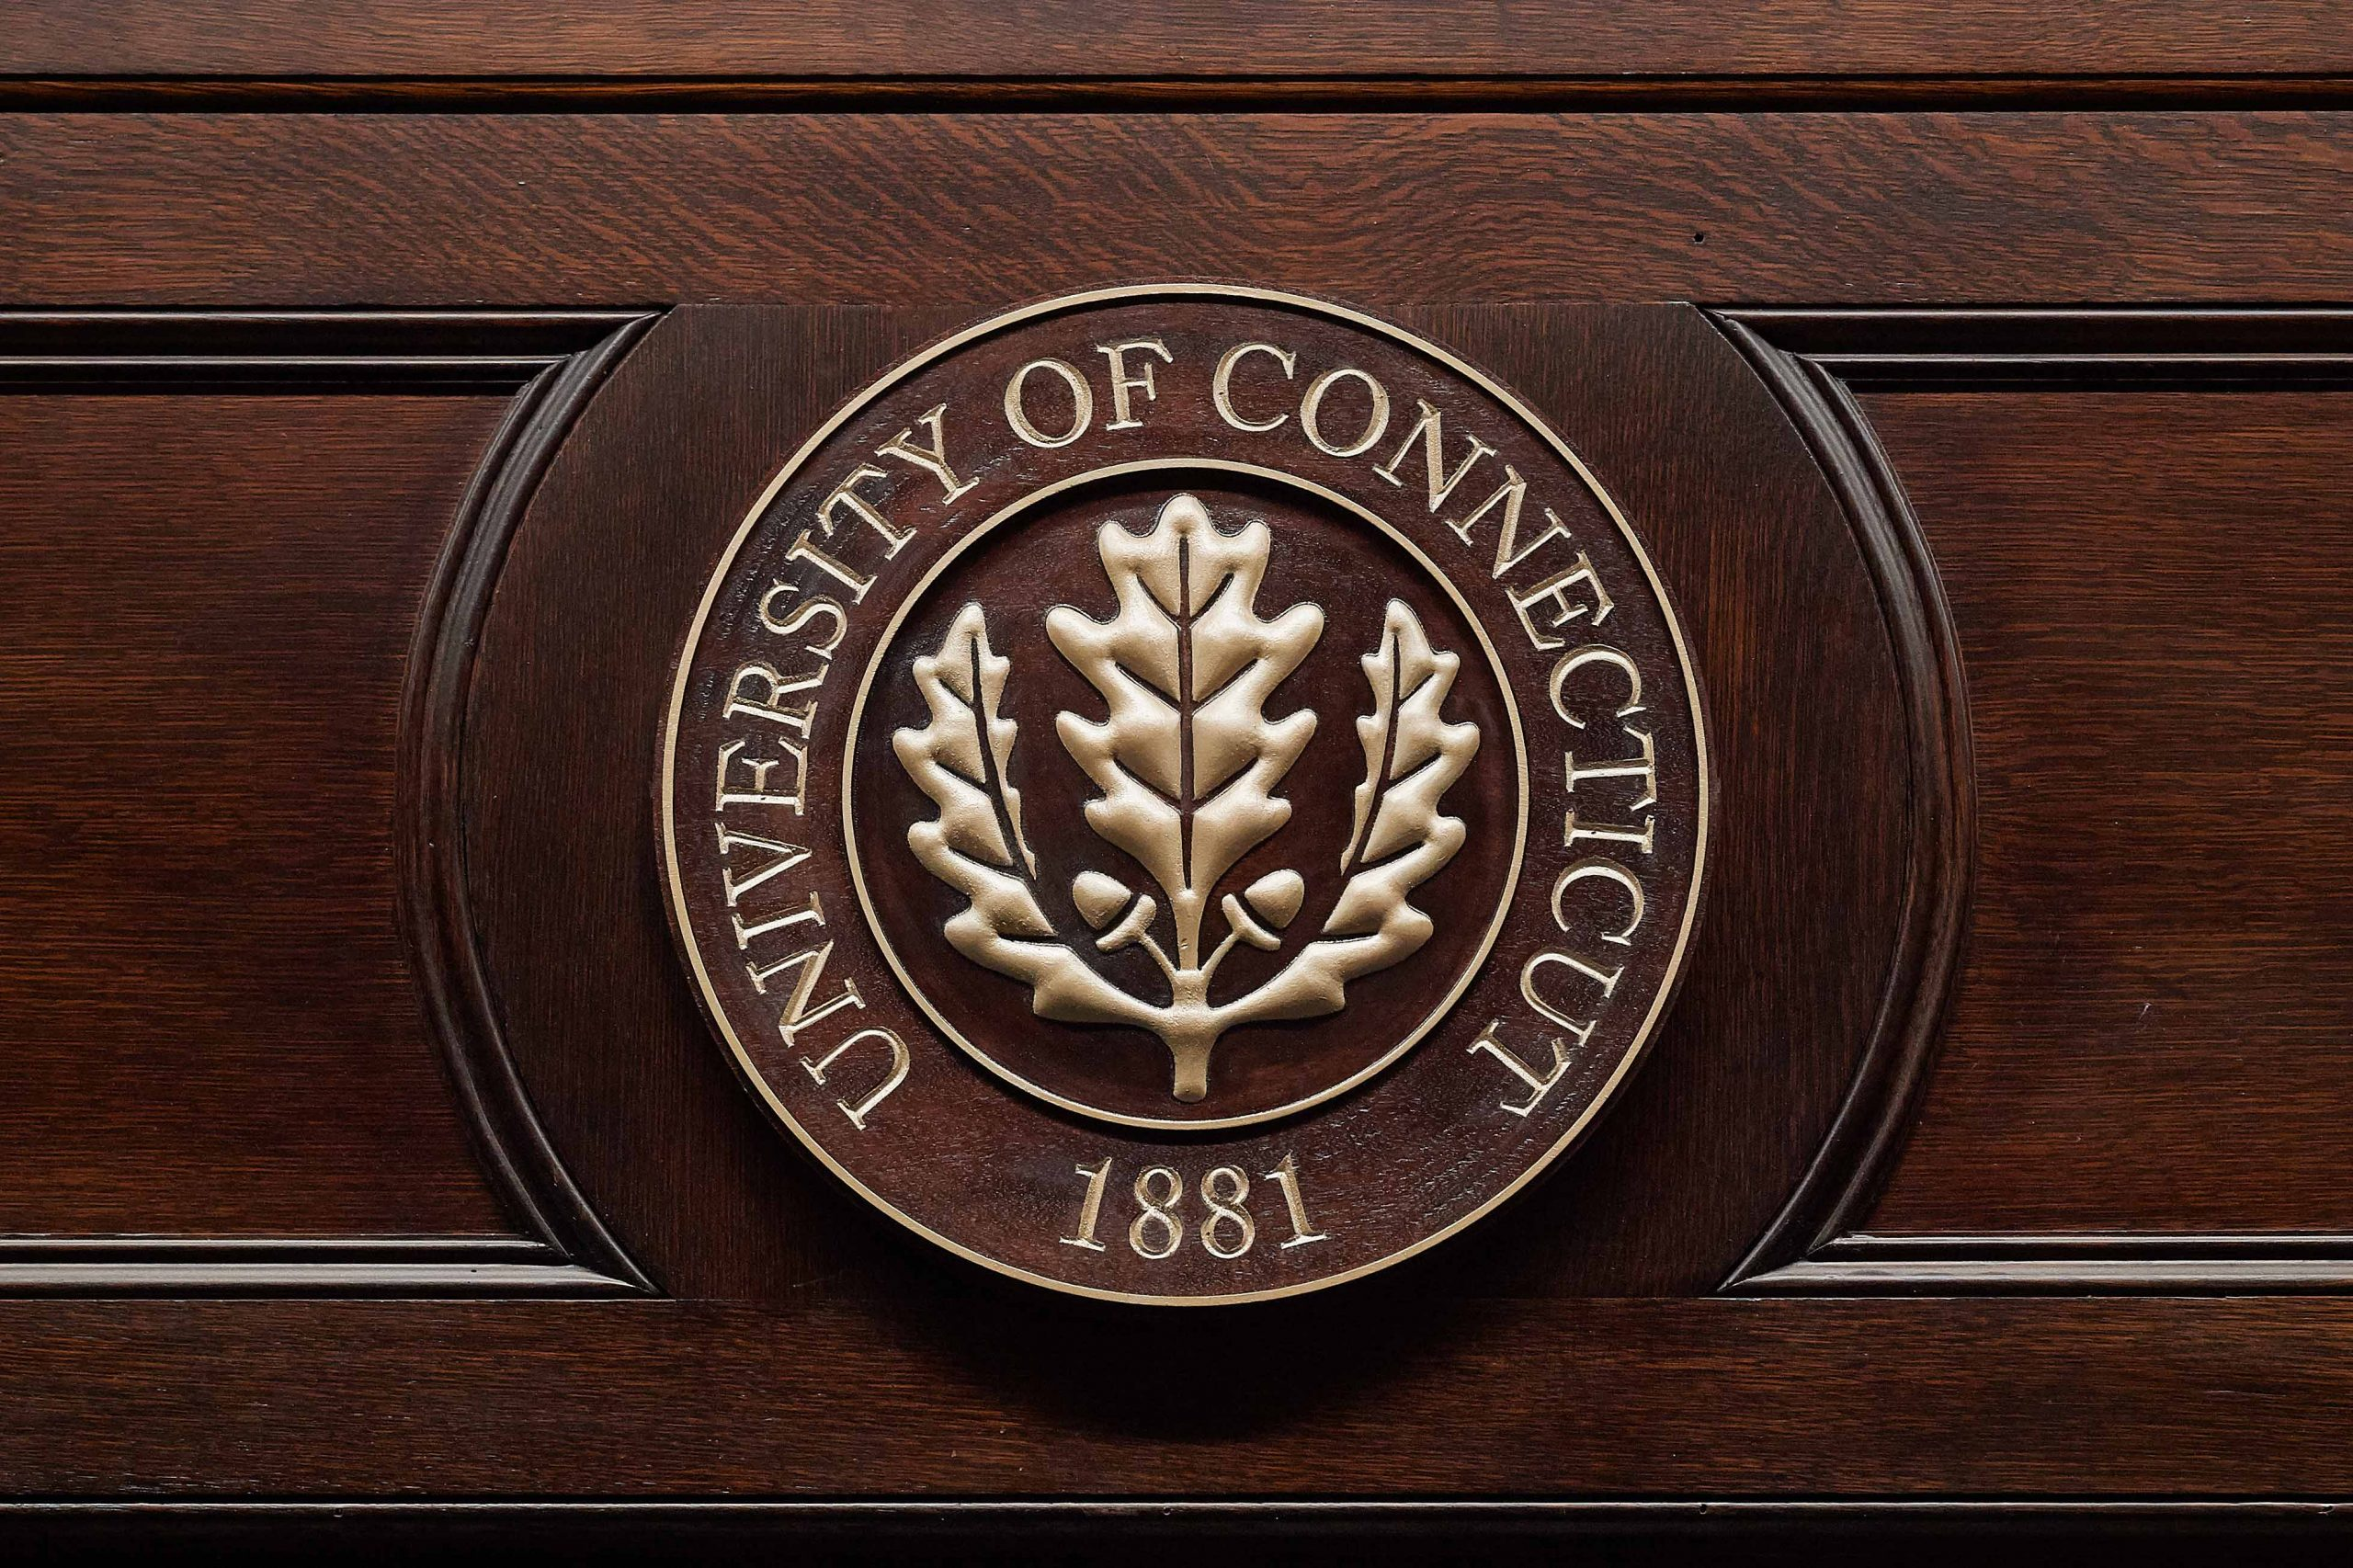 Photo of University of Connecticut seal